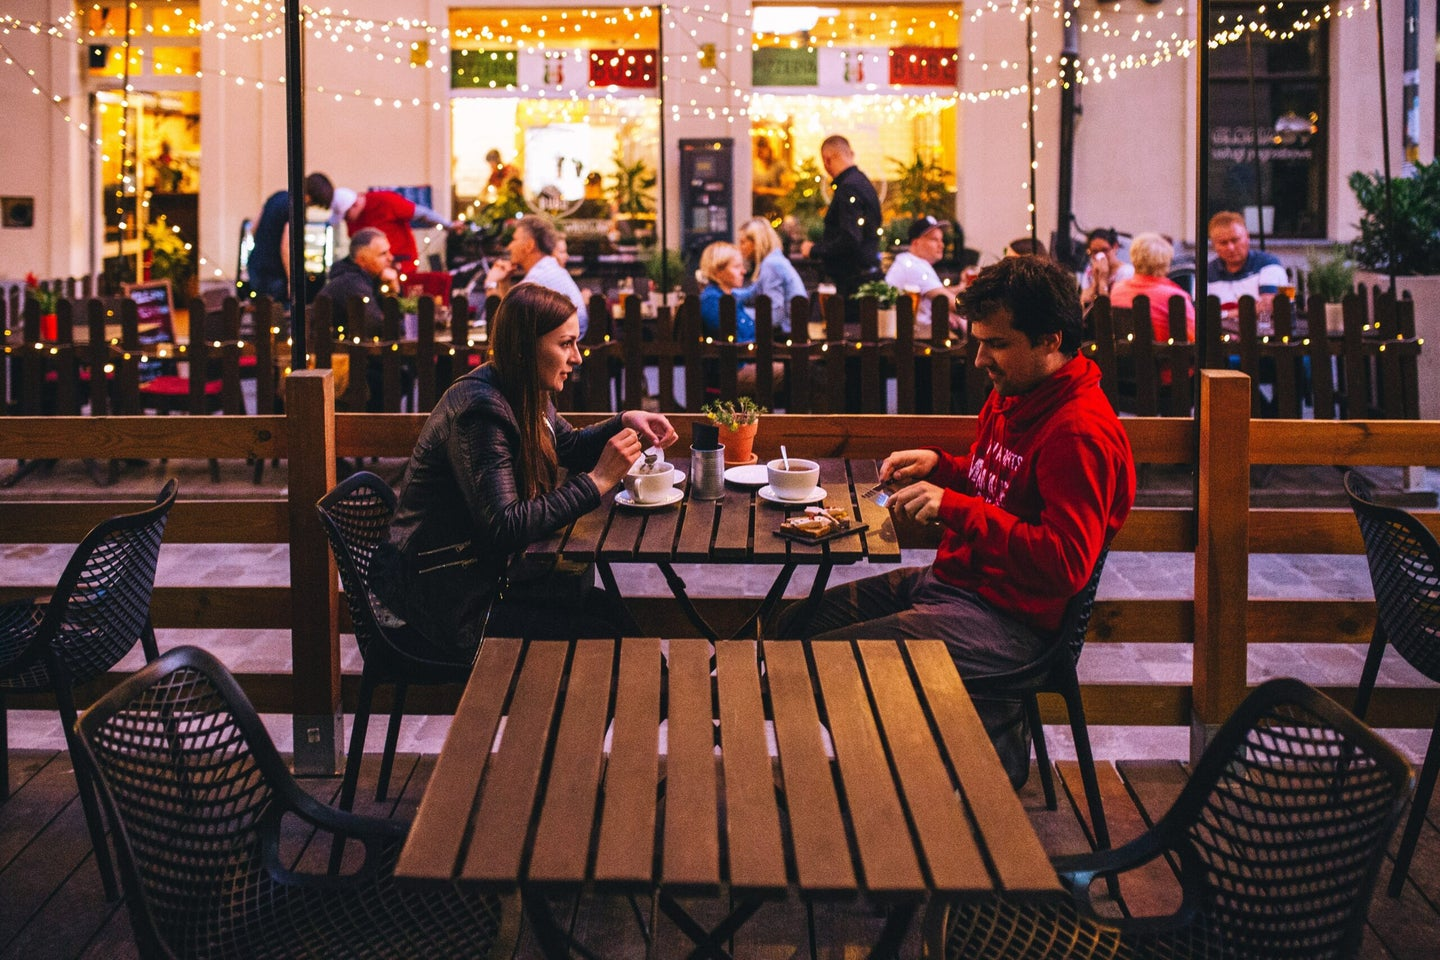 two people eating outside at a restaurant